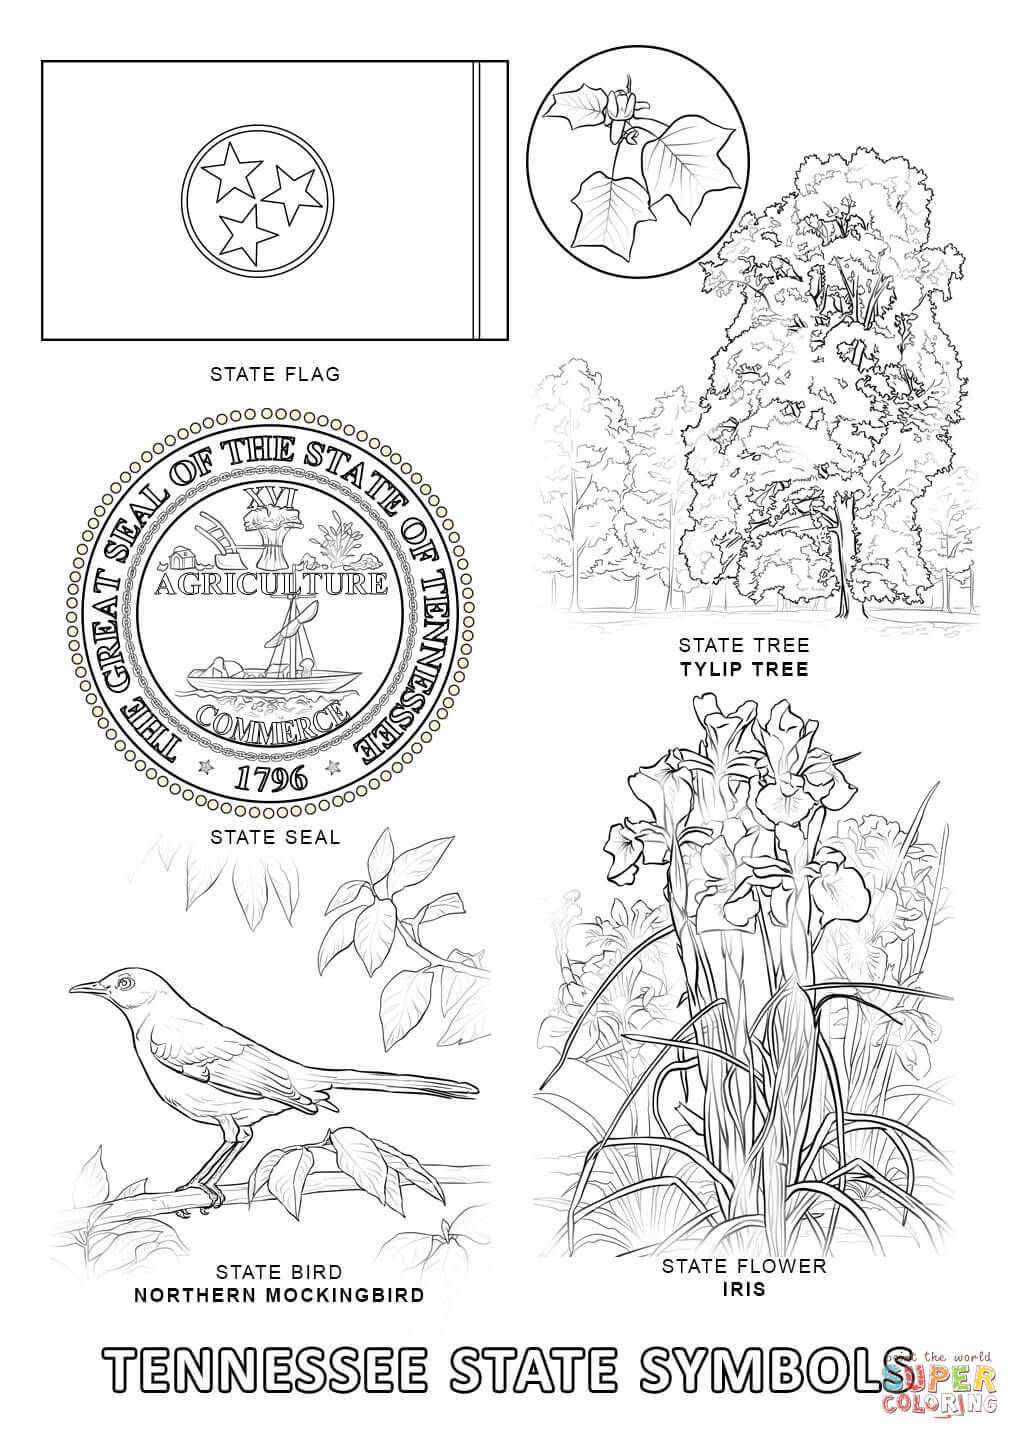 Tennessee State Symbols Coloring Page Free Printable Coloring Pages Flag Coloring Pages Flower Coloring Pages State Symbols